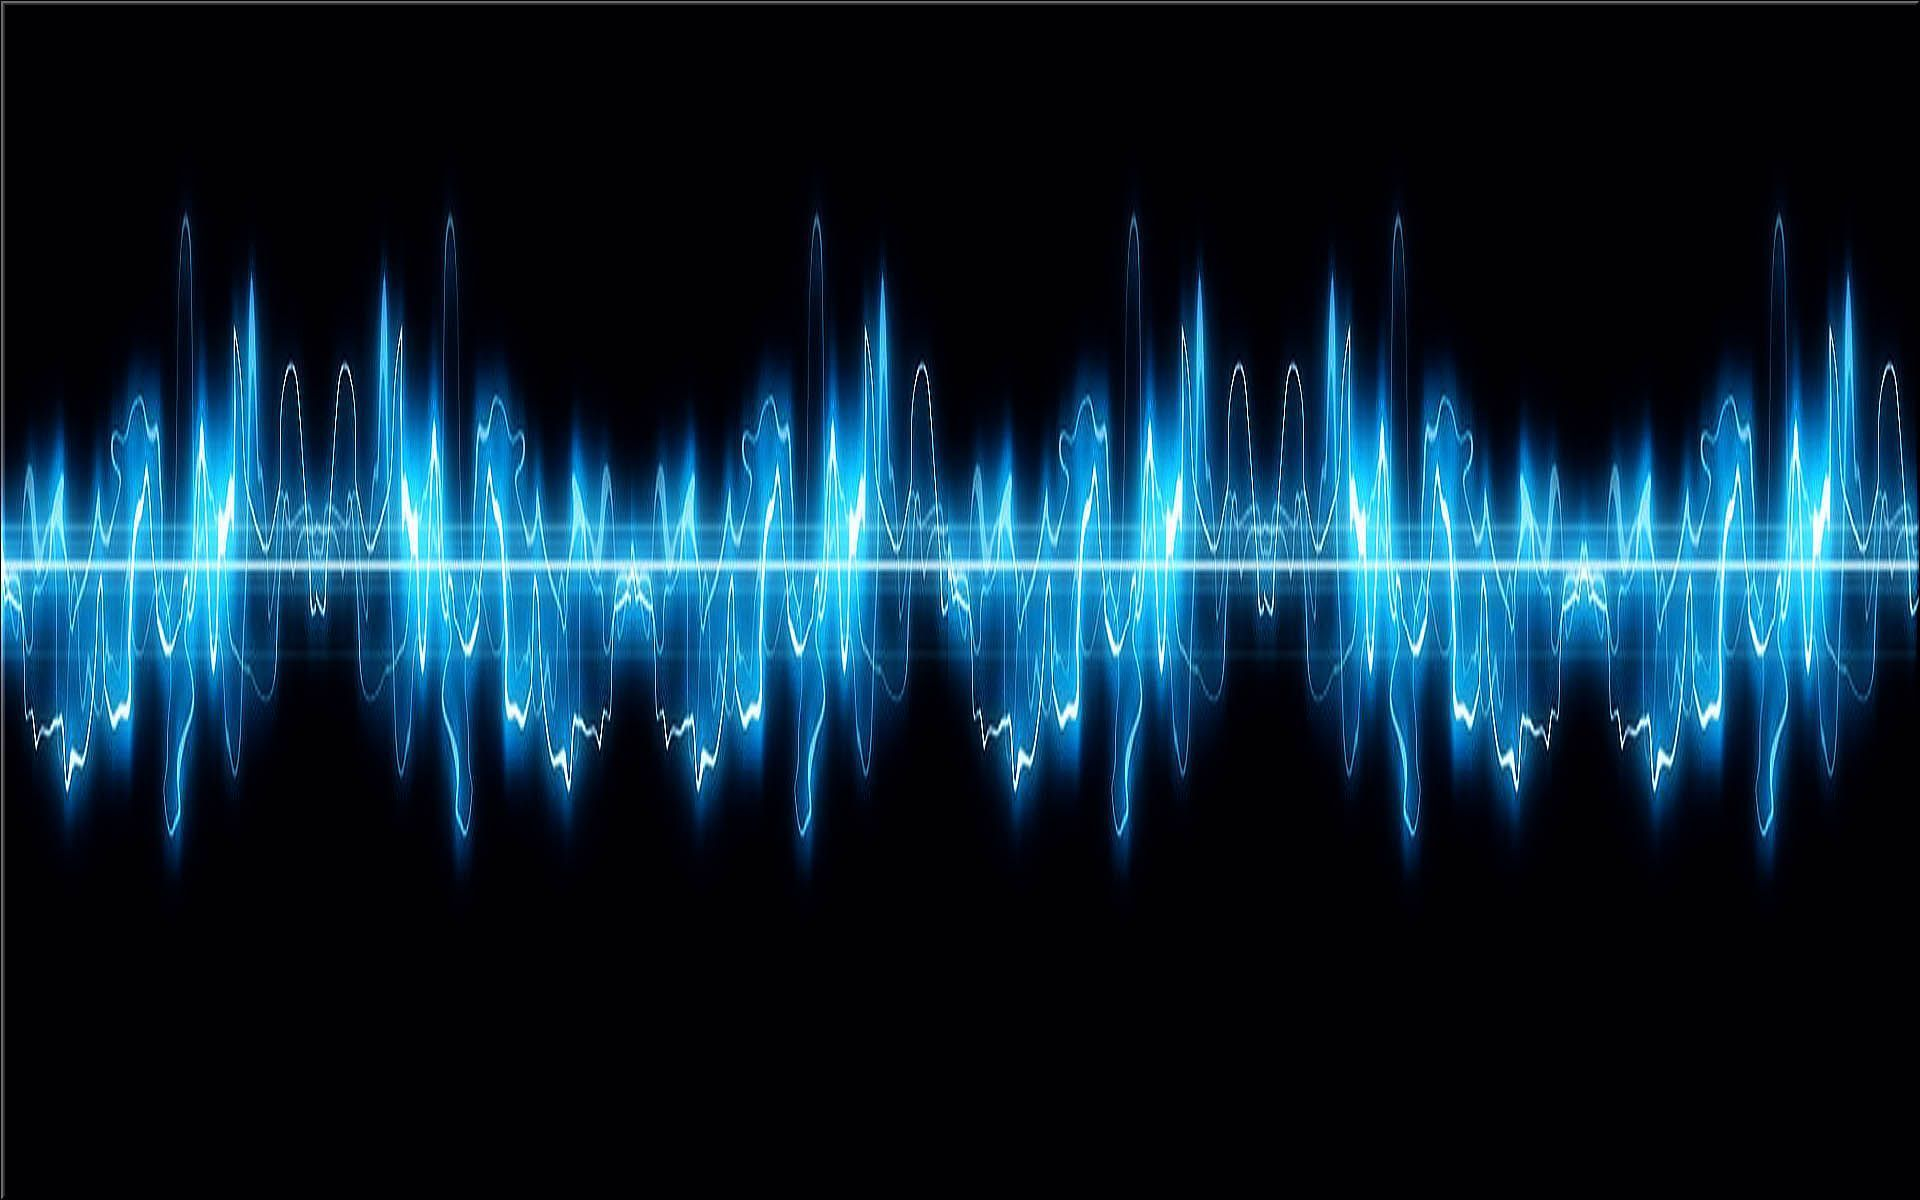 Wallpapers For Moving Sound Waves Wallpaper Music Waves